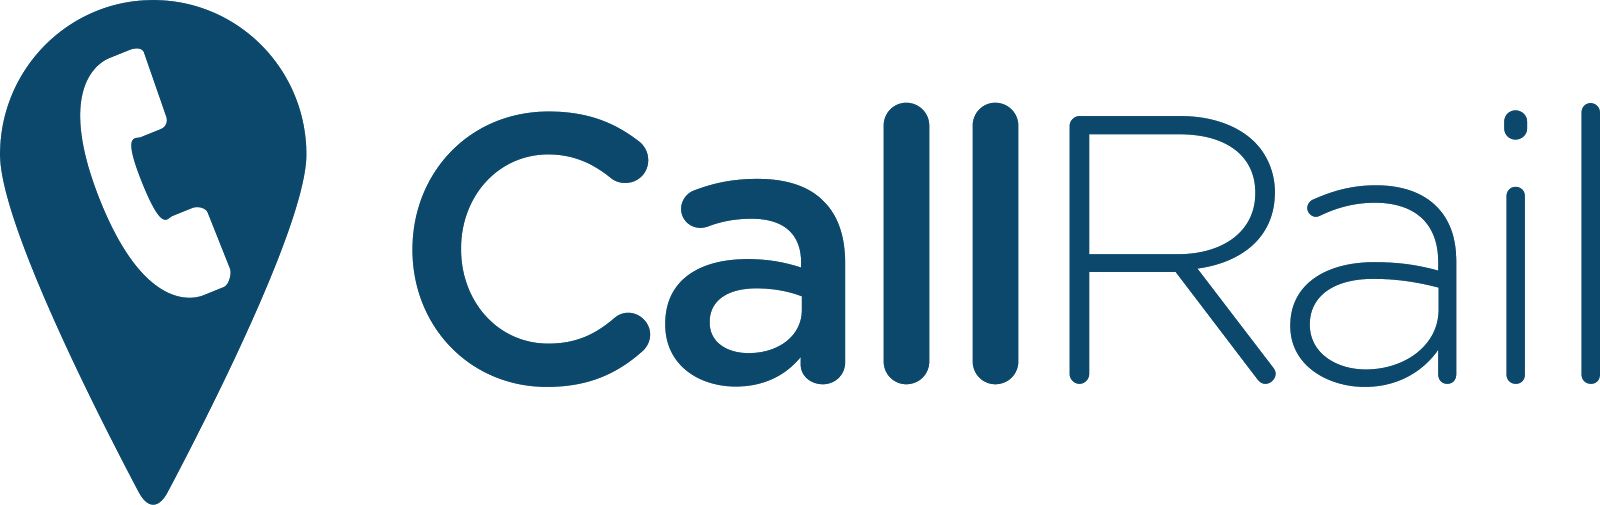 CallRail Logo - Best Call Tracking Software